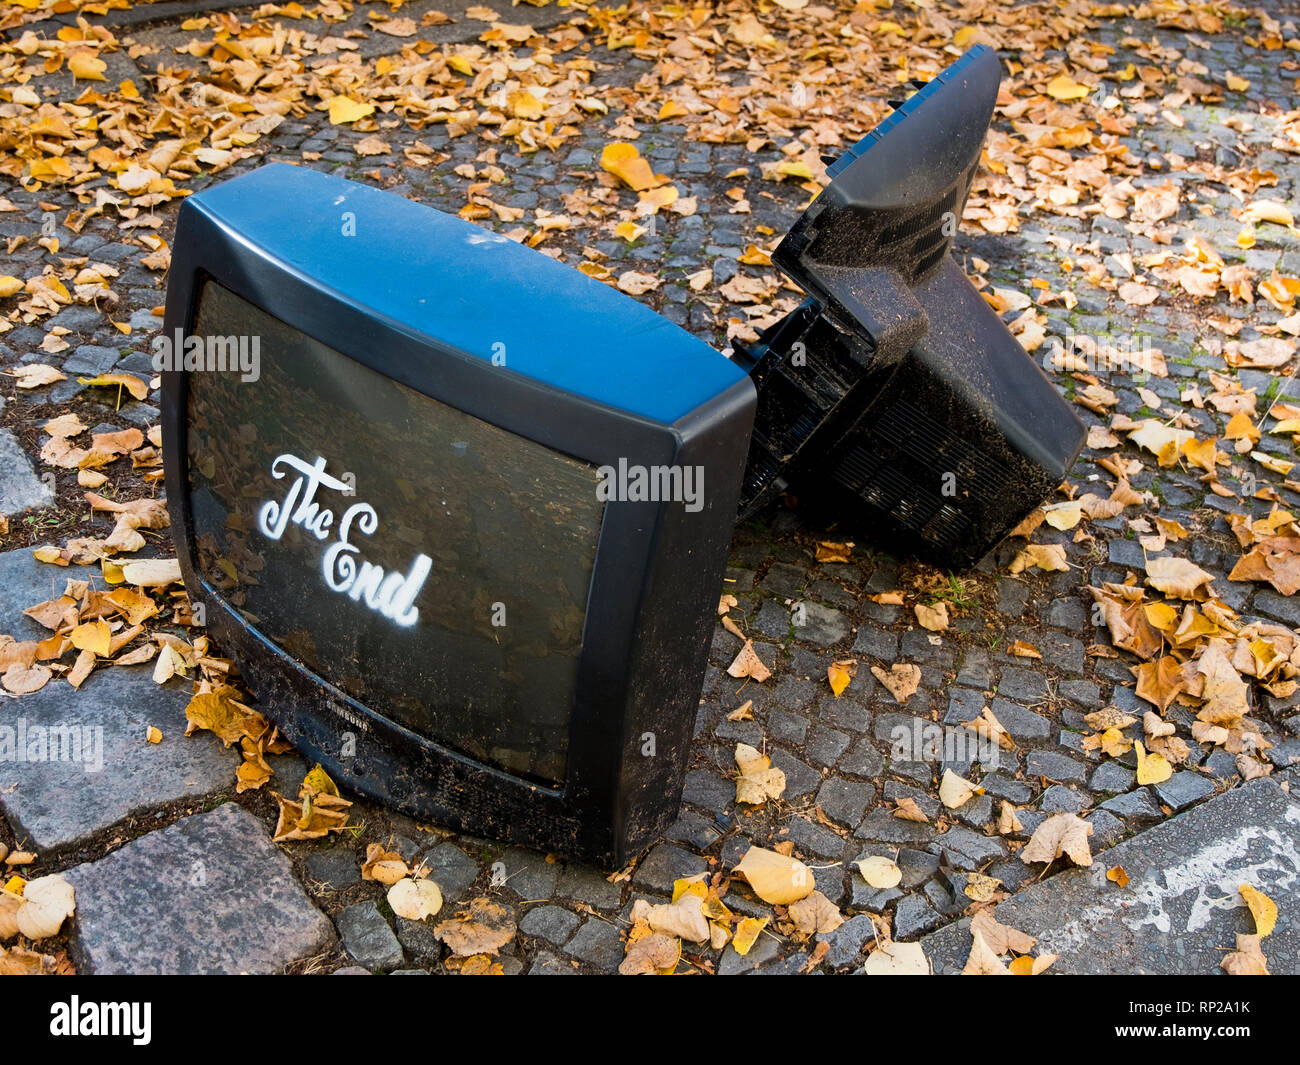 Someone had fun throwing out their old Television in Berlin, Germany. - Stock Image